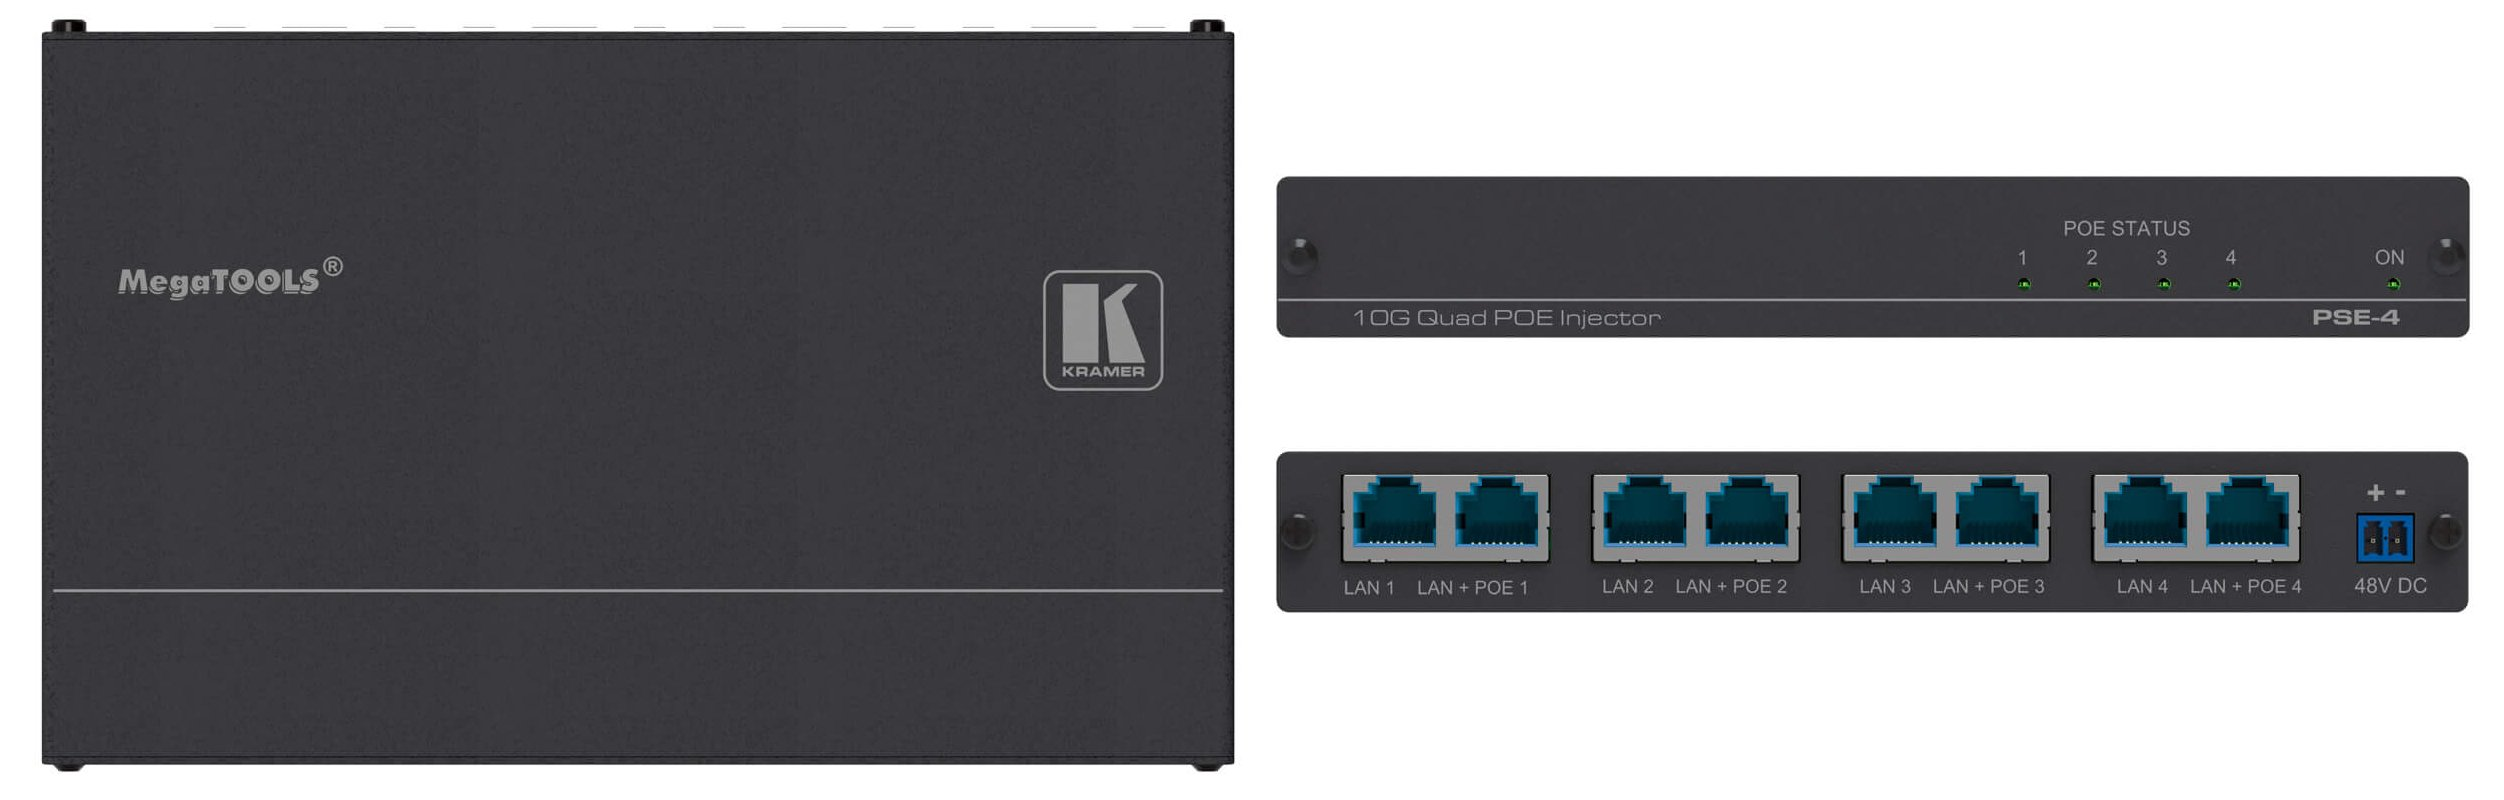 Quad 10G HDBaseT and Ethernet Power Injector